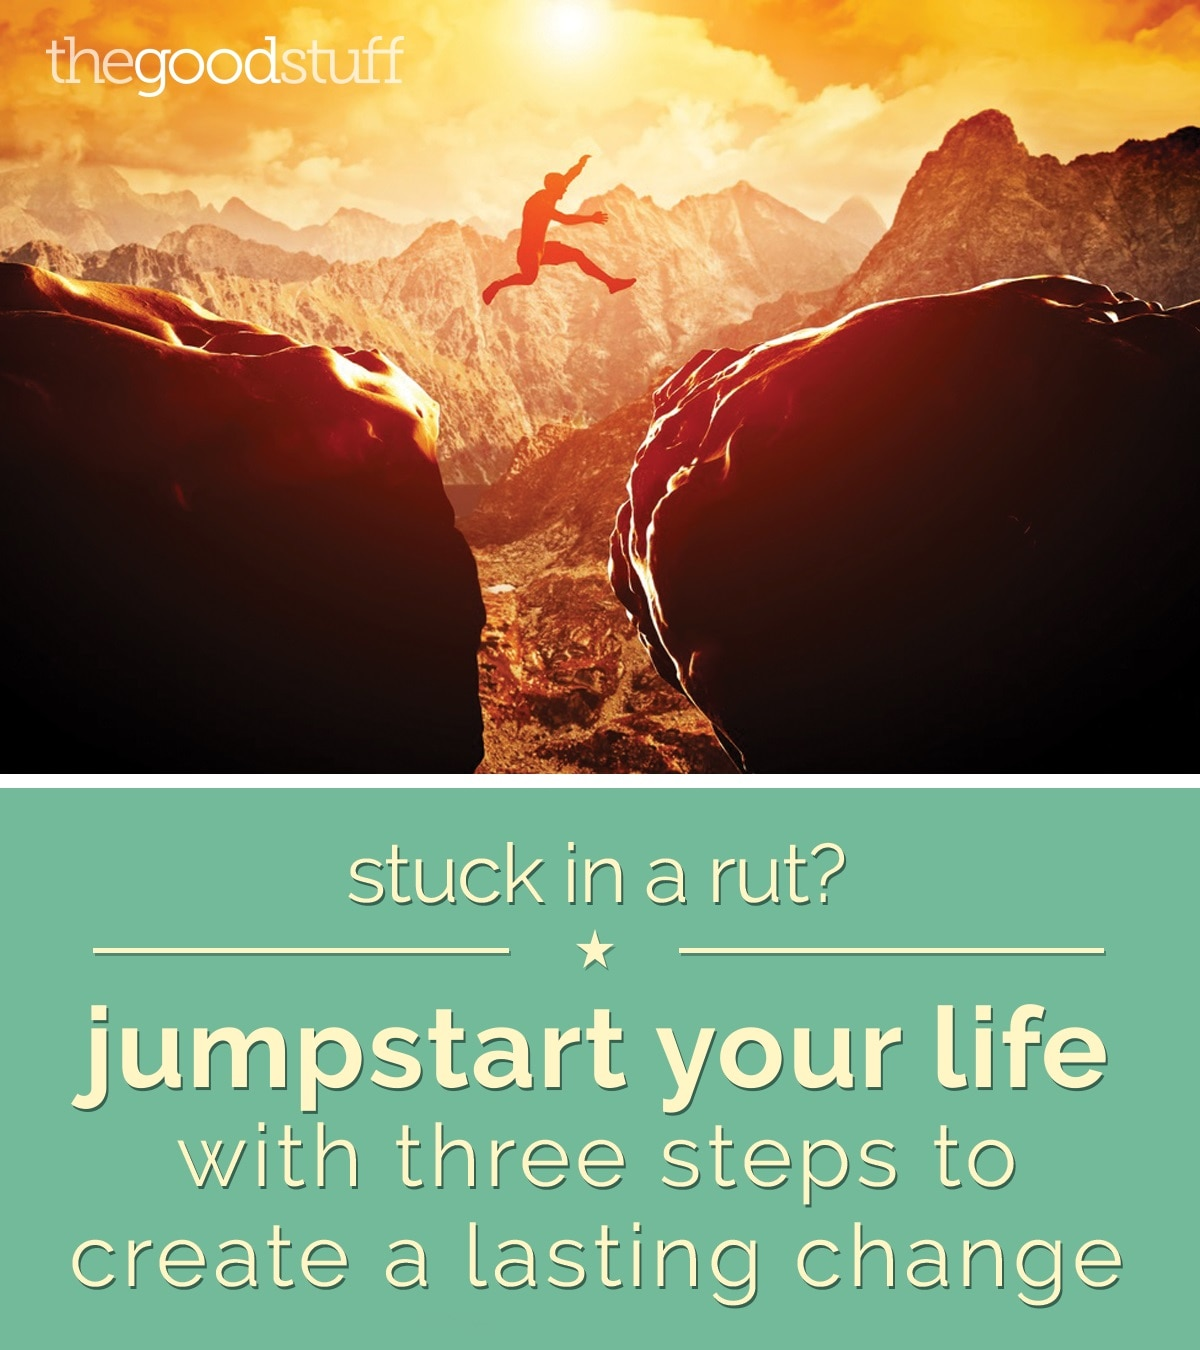 life-jumpstart-your-life